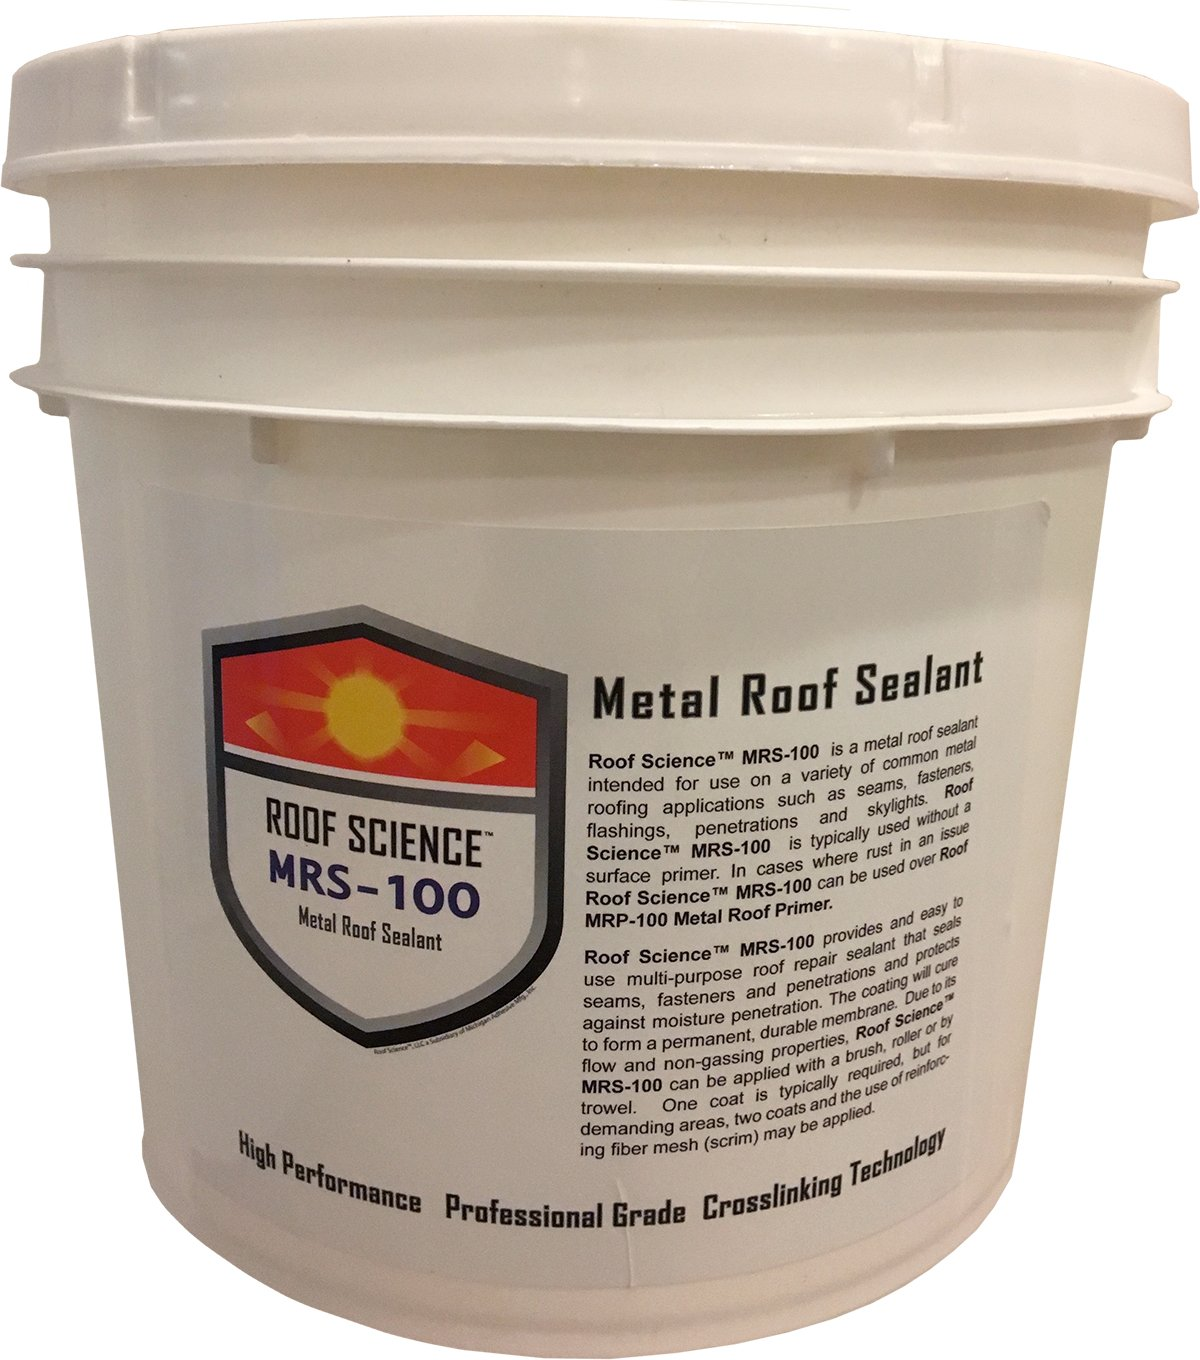 Roof Science MRS-100 Metal Roof Sealant